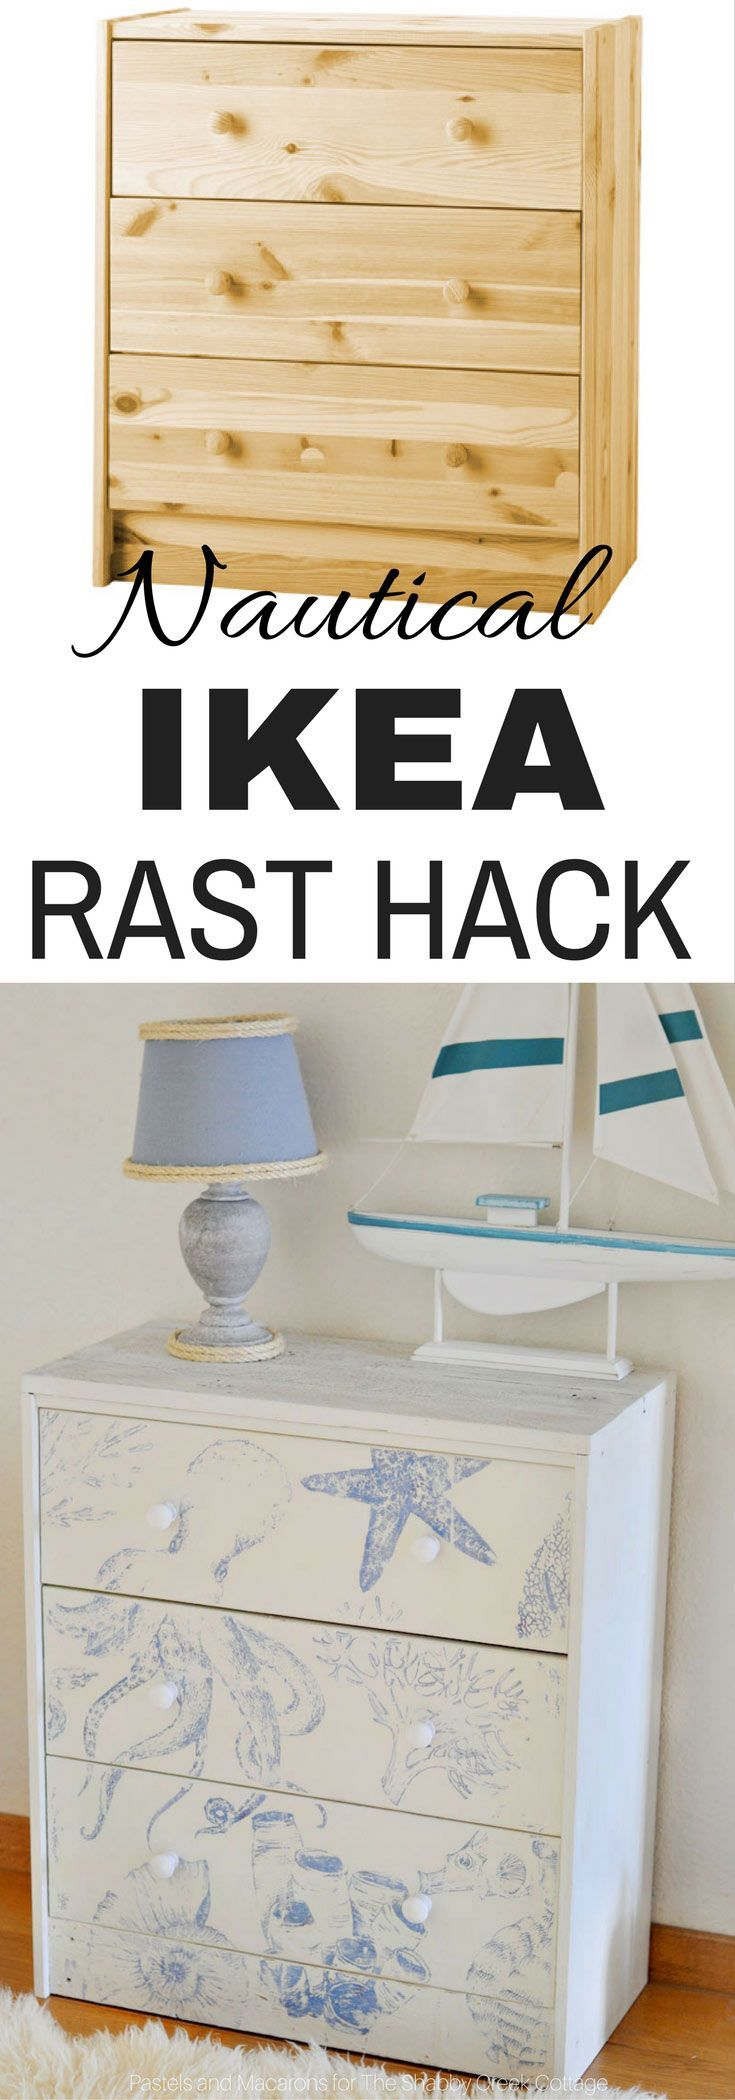 Unique and Beautiful Ikea Rast Hack for a Nautical Themed Bedroom. An easy DIY with big impact.